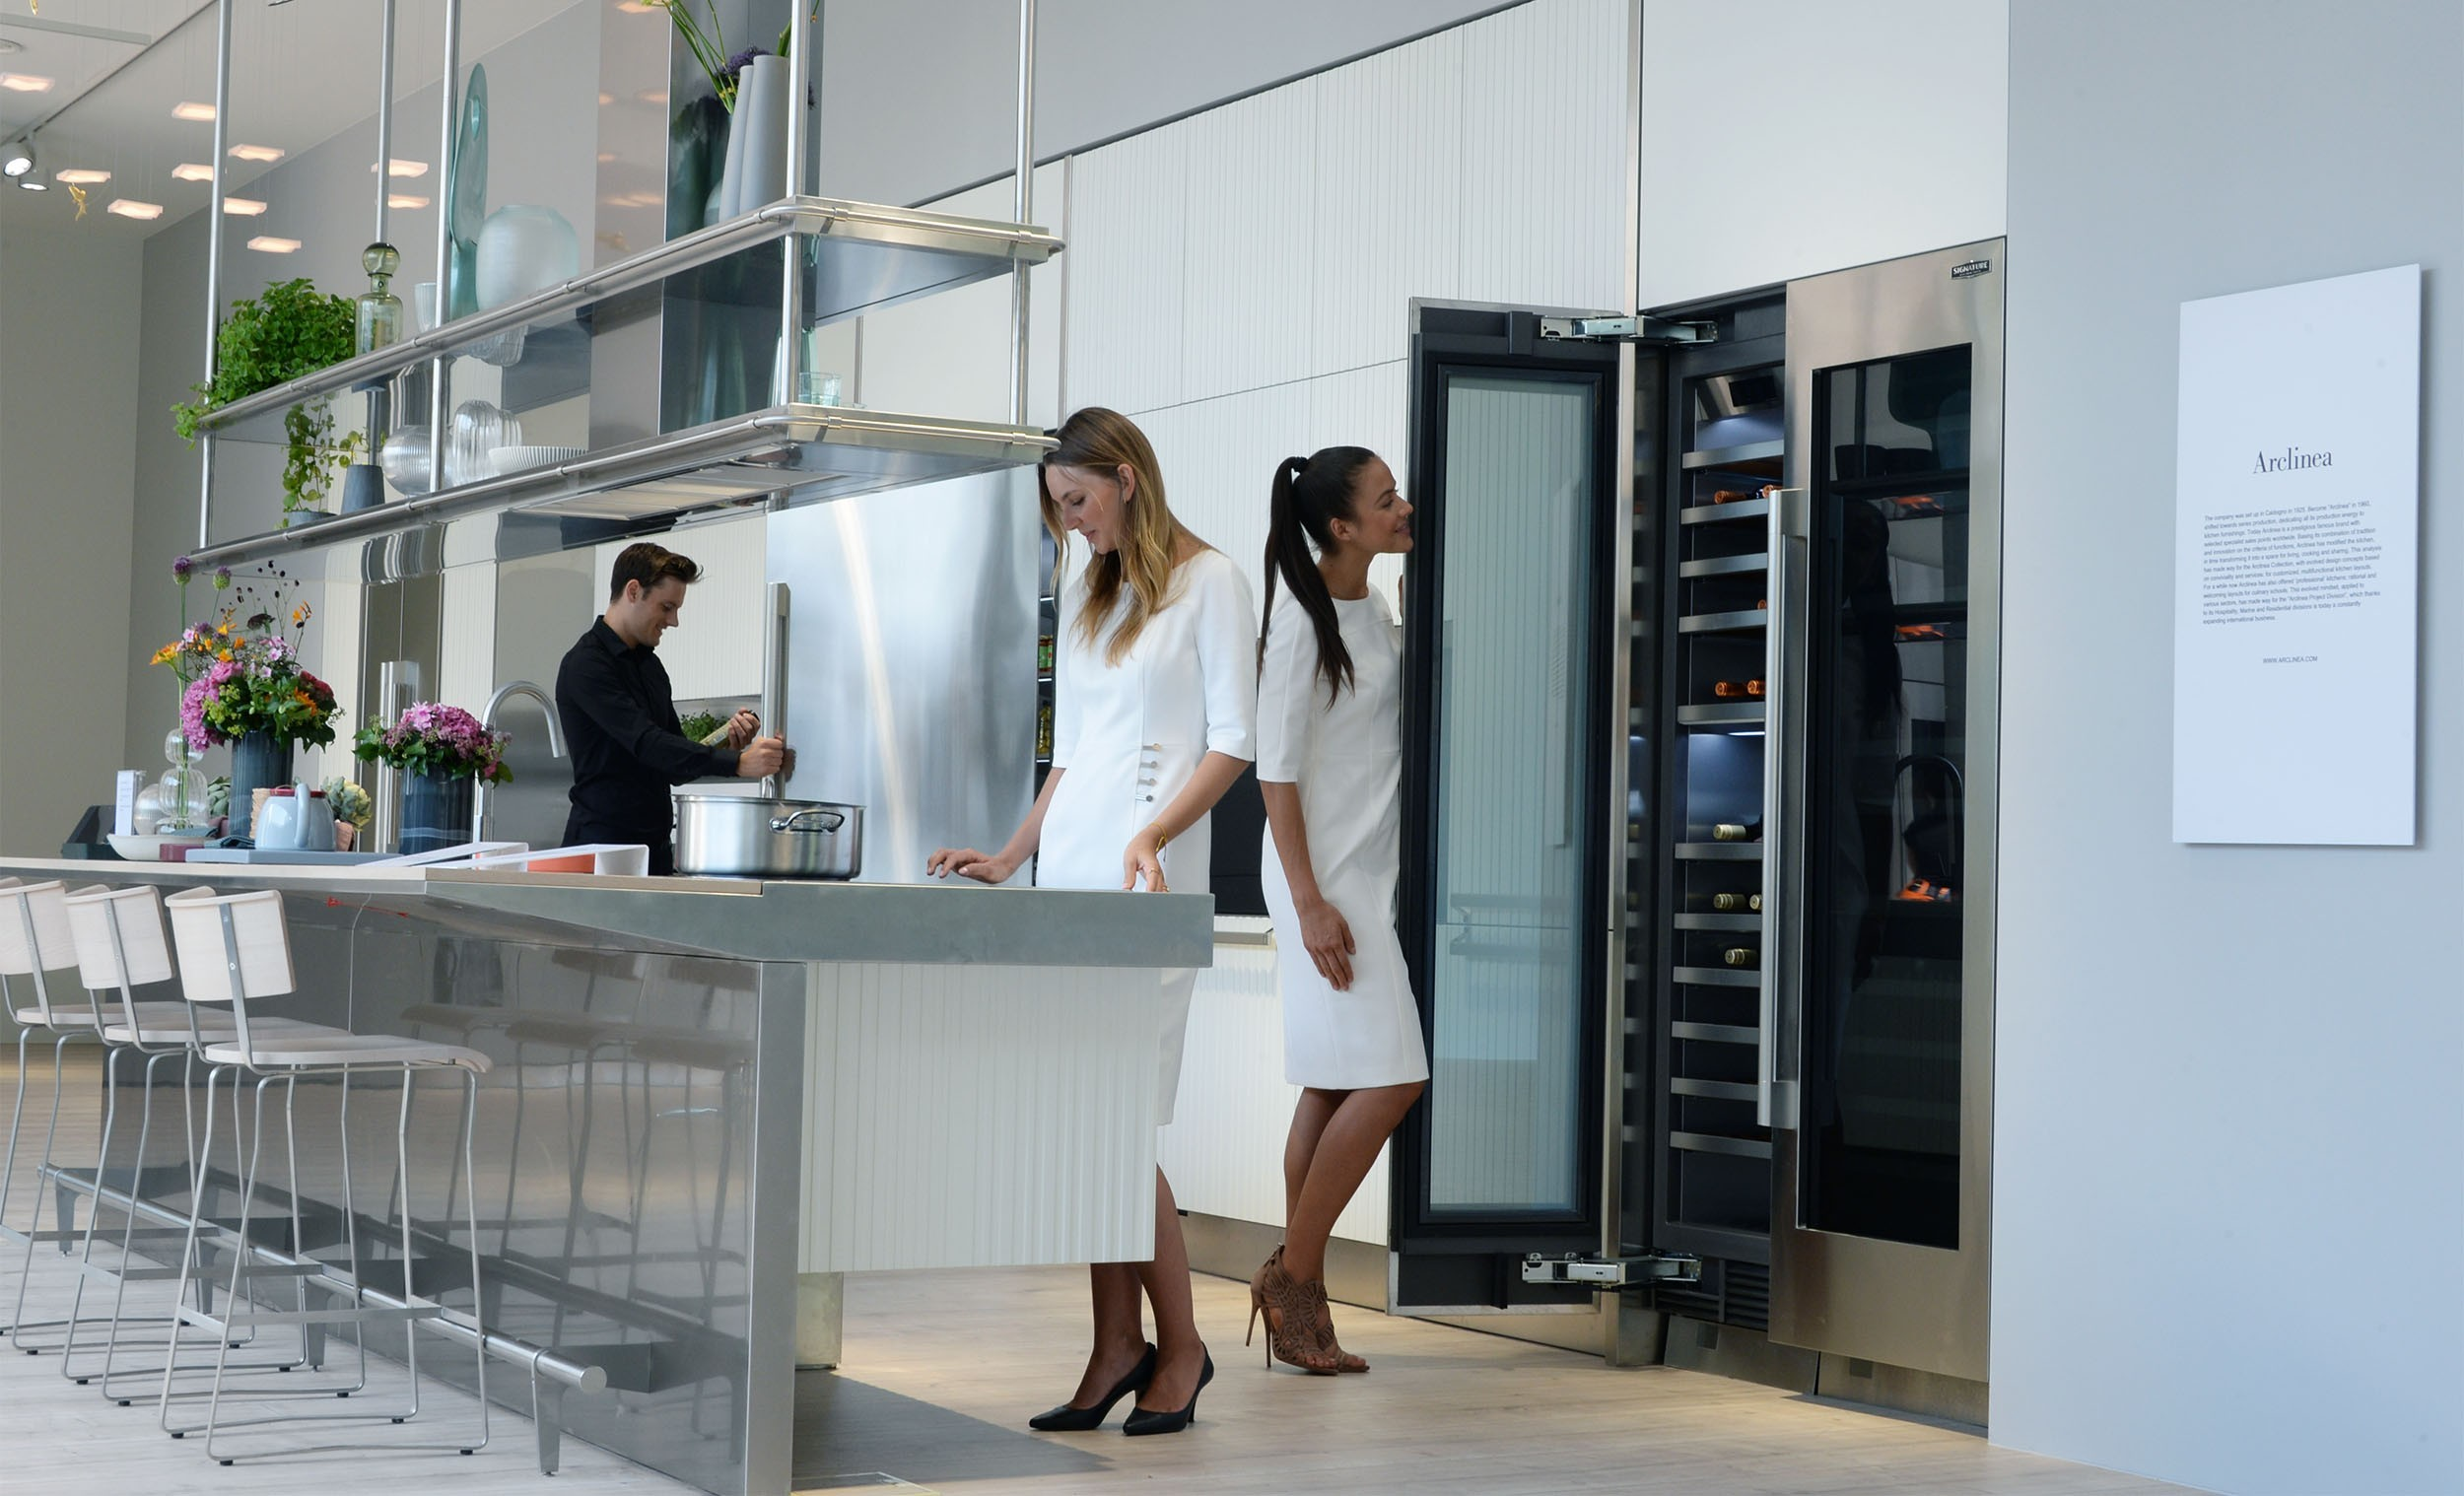 Another side view of the LG Signature Kitchen Suite display zone, three models are standing in the kitchen